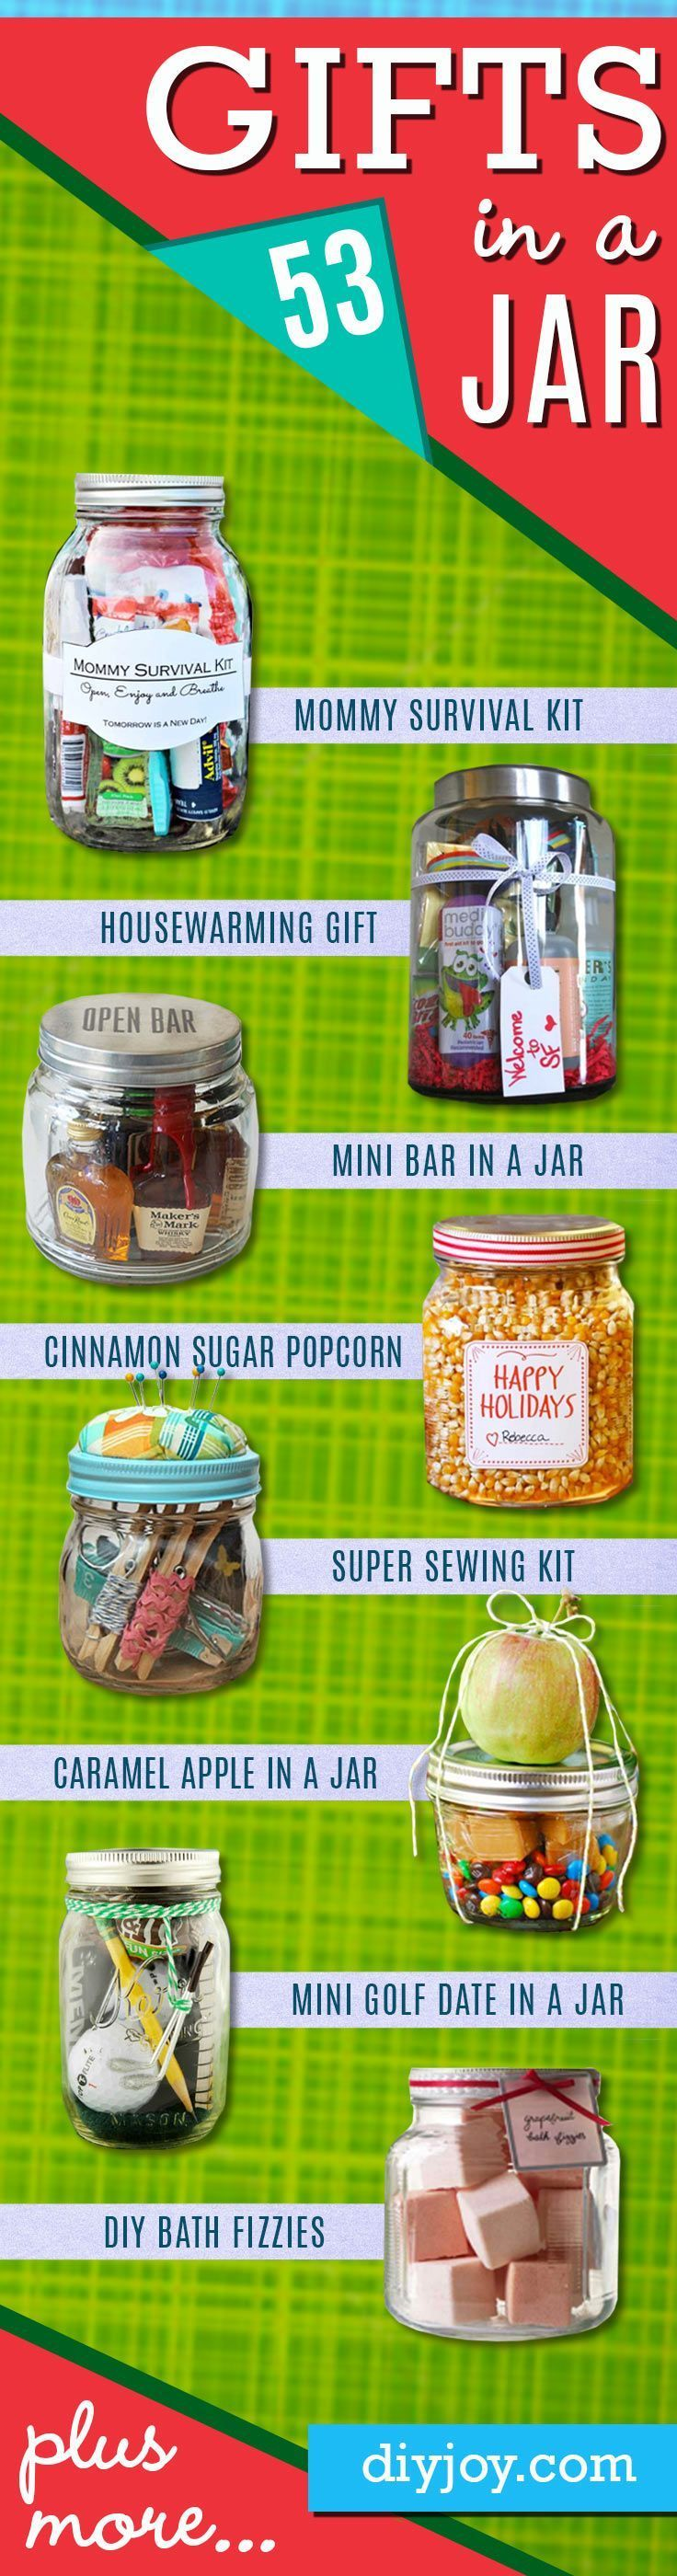 Homemade DIY Gifts in A Jar | Best Mason Jar Cookie Mixes and Recipes, Alcohol Mixers | Fun Gift Ideas for Men, Women, Teens, Kids, Teacher, Mom. Christmas, Holiday, Birthday and Easy Last Minute Gifts